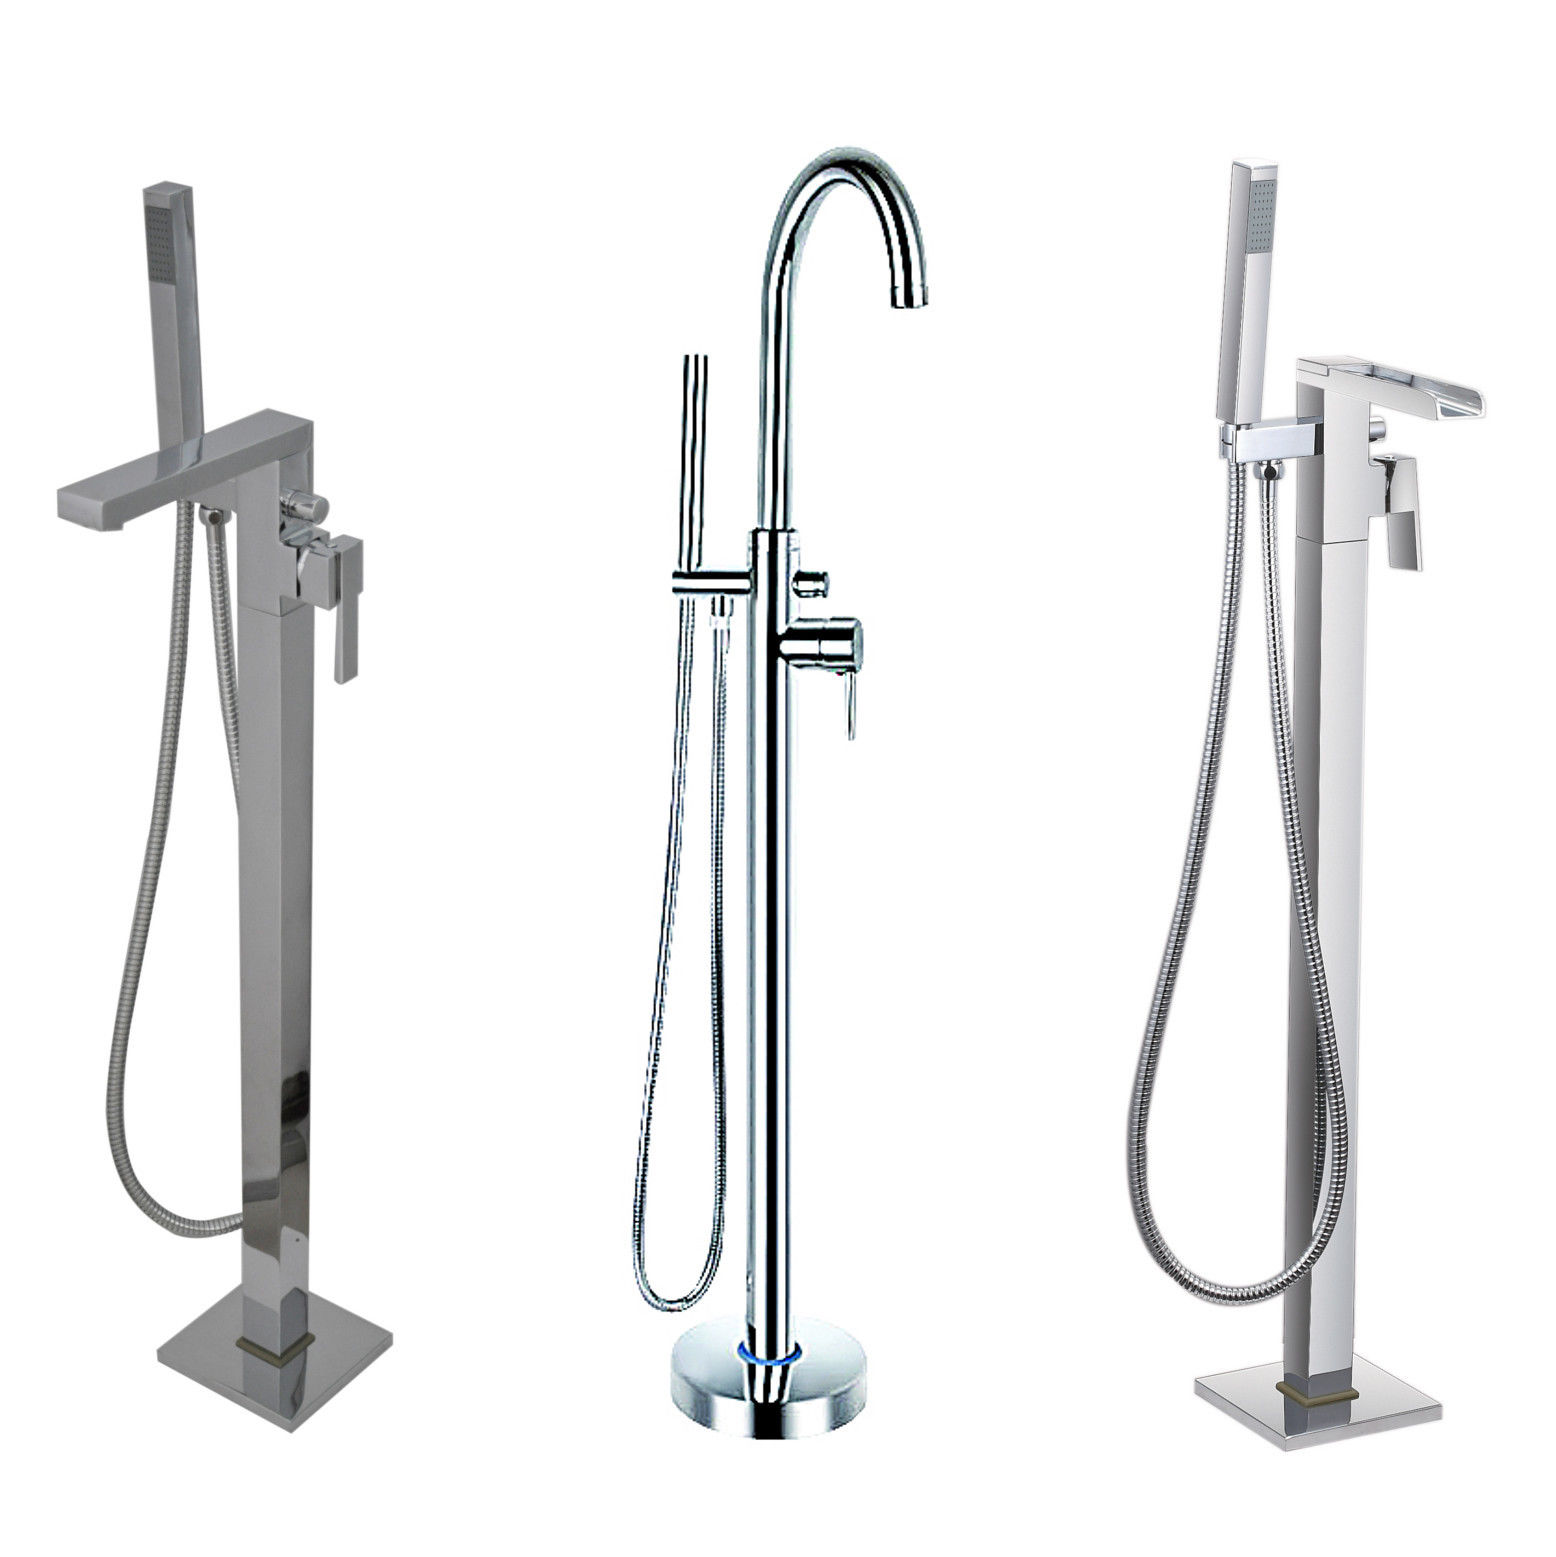 Freestanding Bath Taps Floor Standing Bath Shower Mixer Tap For Use With